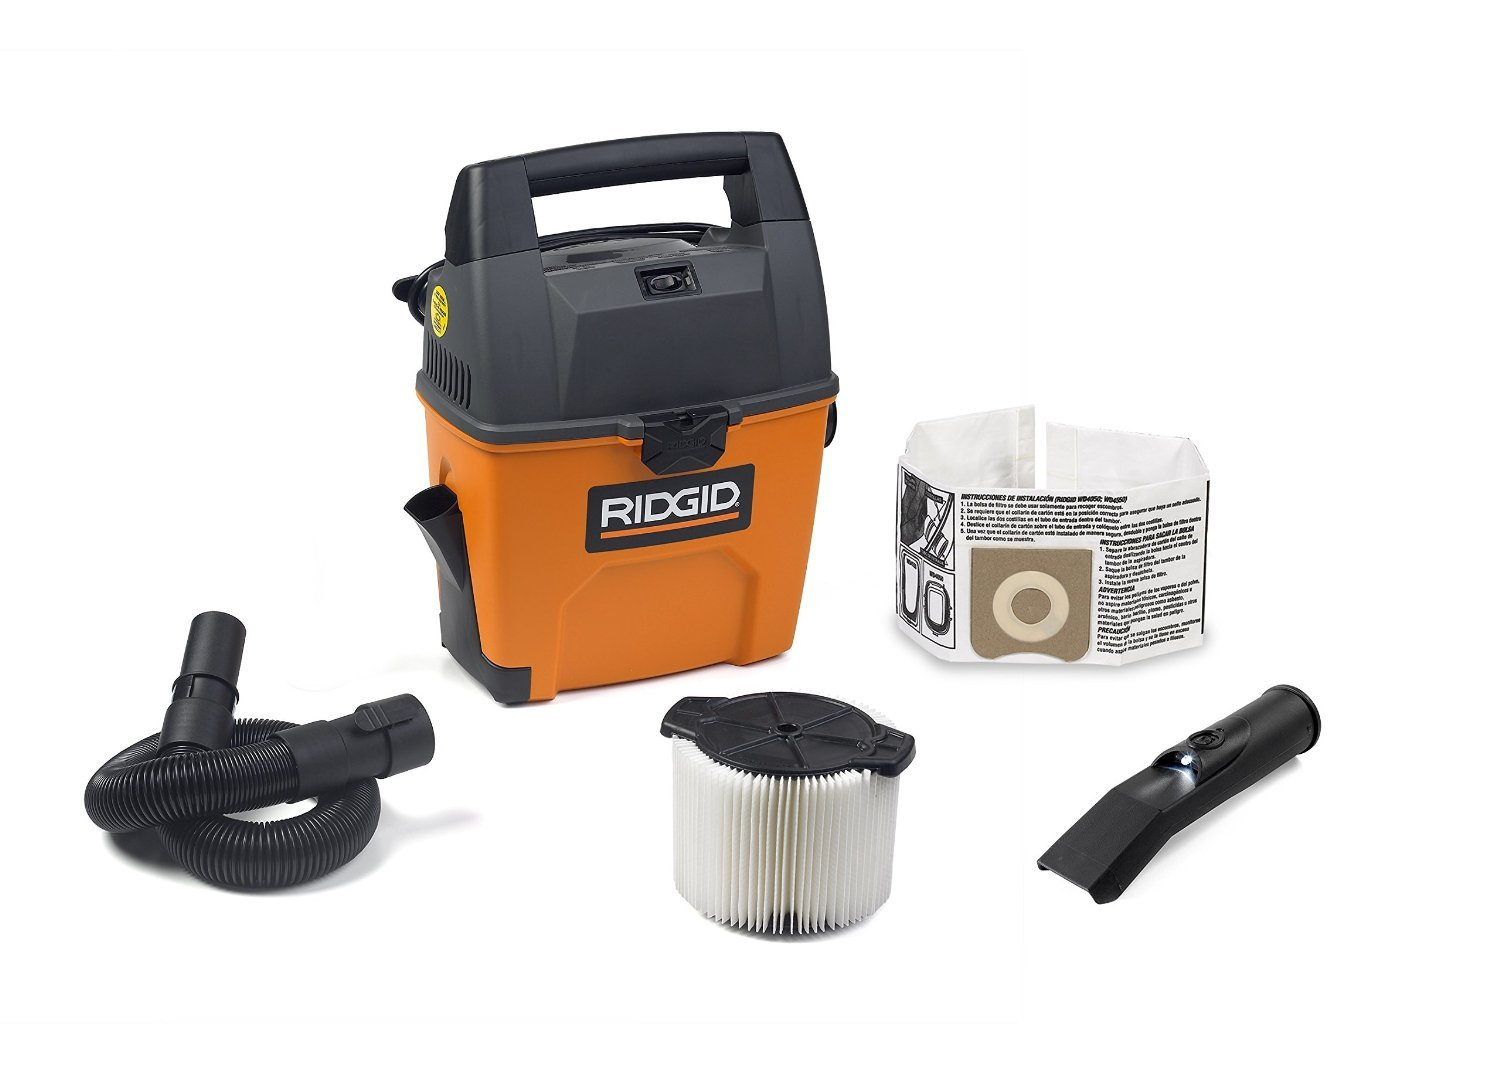 RIDGID Wet Dry Vacuums VAC3000 Portable Wet Dry Vacuum Cleaner for Car, Garage or In-Home Use, 3-Gallon, 3.5 Peak Horsepower Wet Dry Auto Vacuum Cleaner for Car by Ridgid